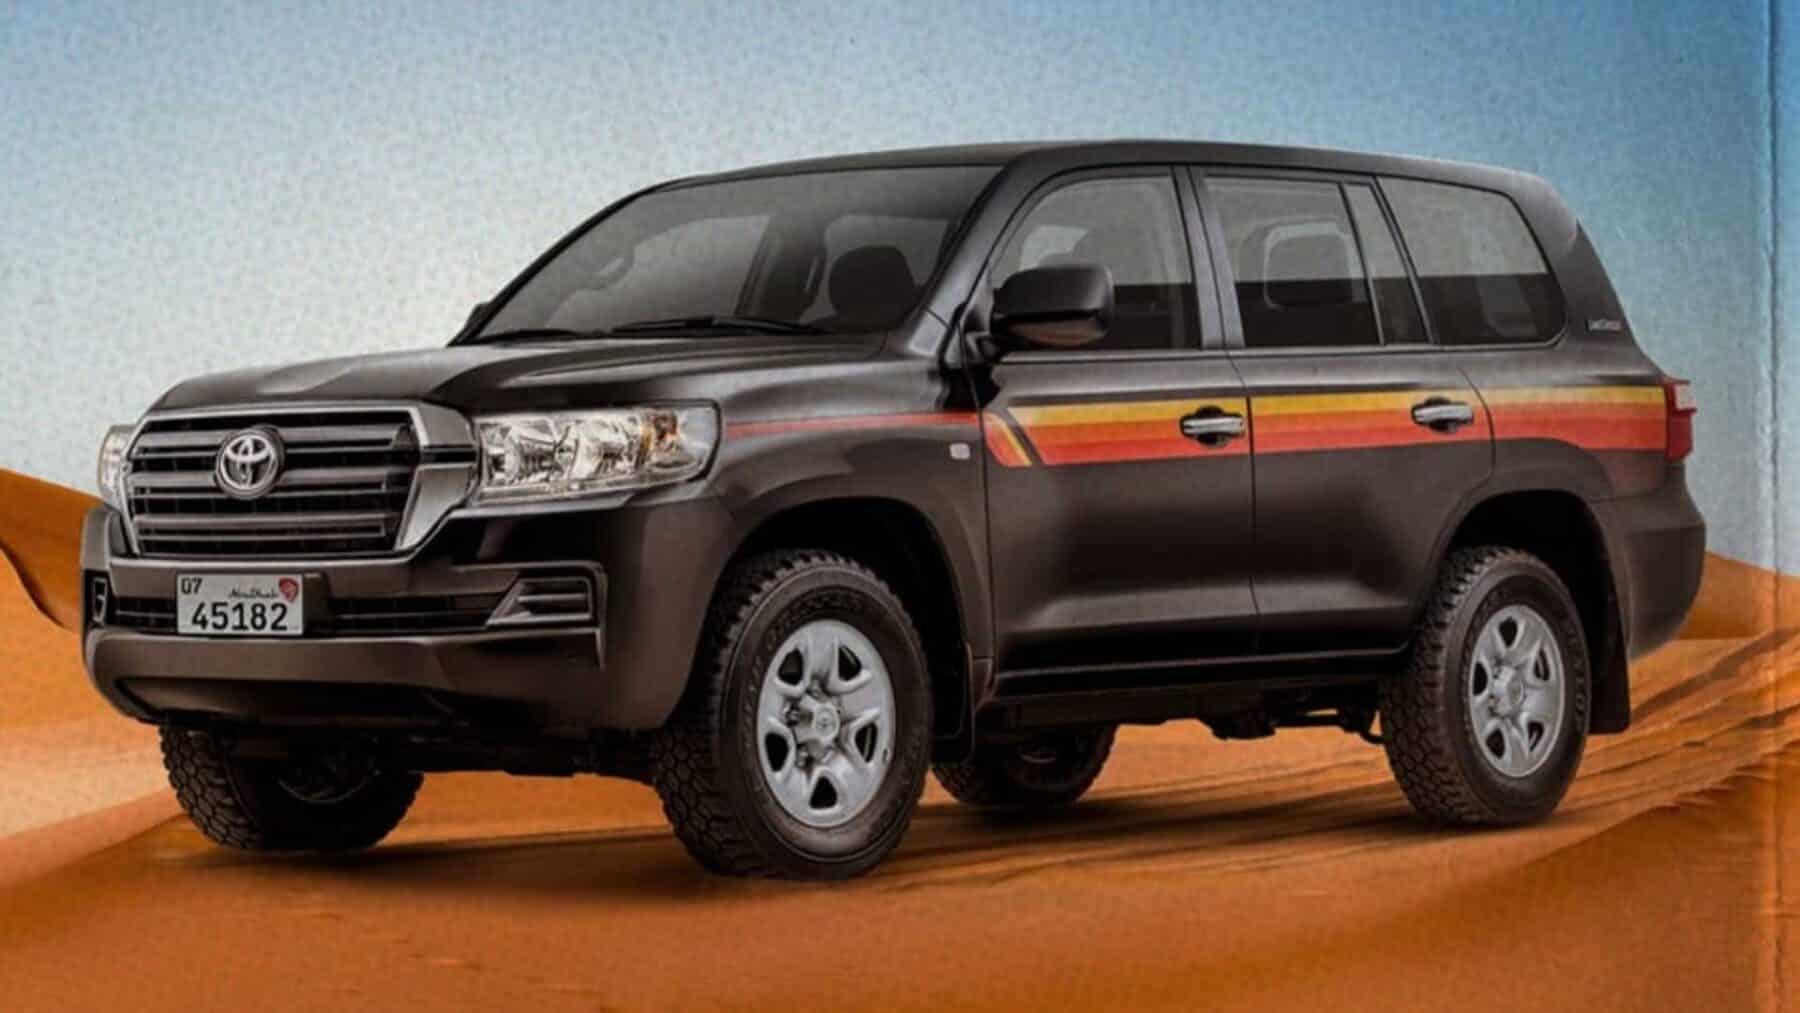 2020 Land Cruiser Price and Release date